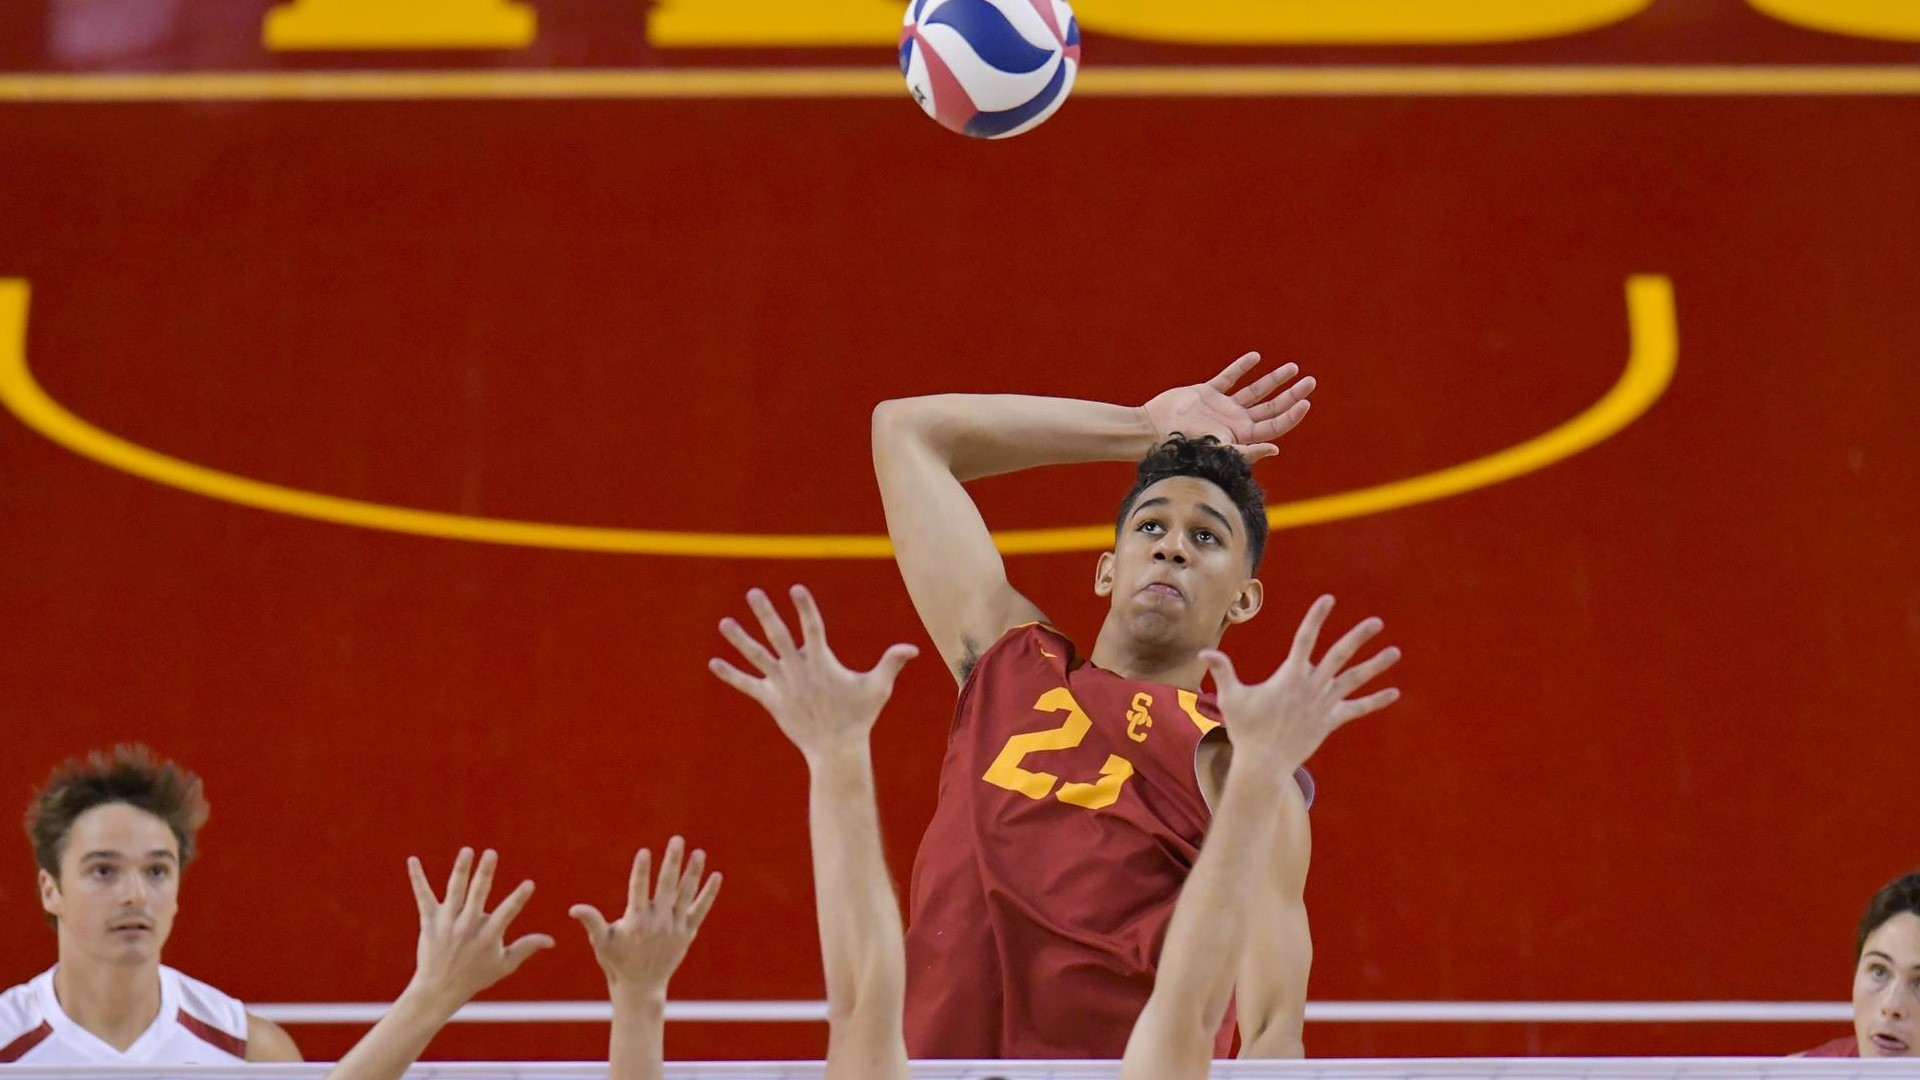 Res: 1920x1080, Stanford Cardinal vs USC Trojans Men's Volleyball - February 8, 2018 -  Pac-12 | Pac-12